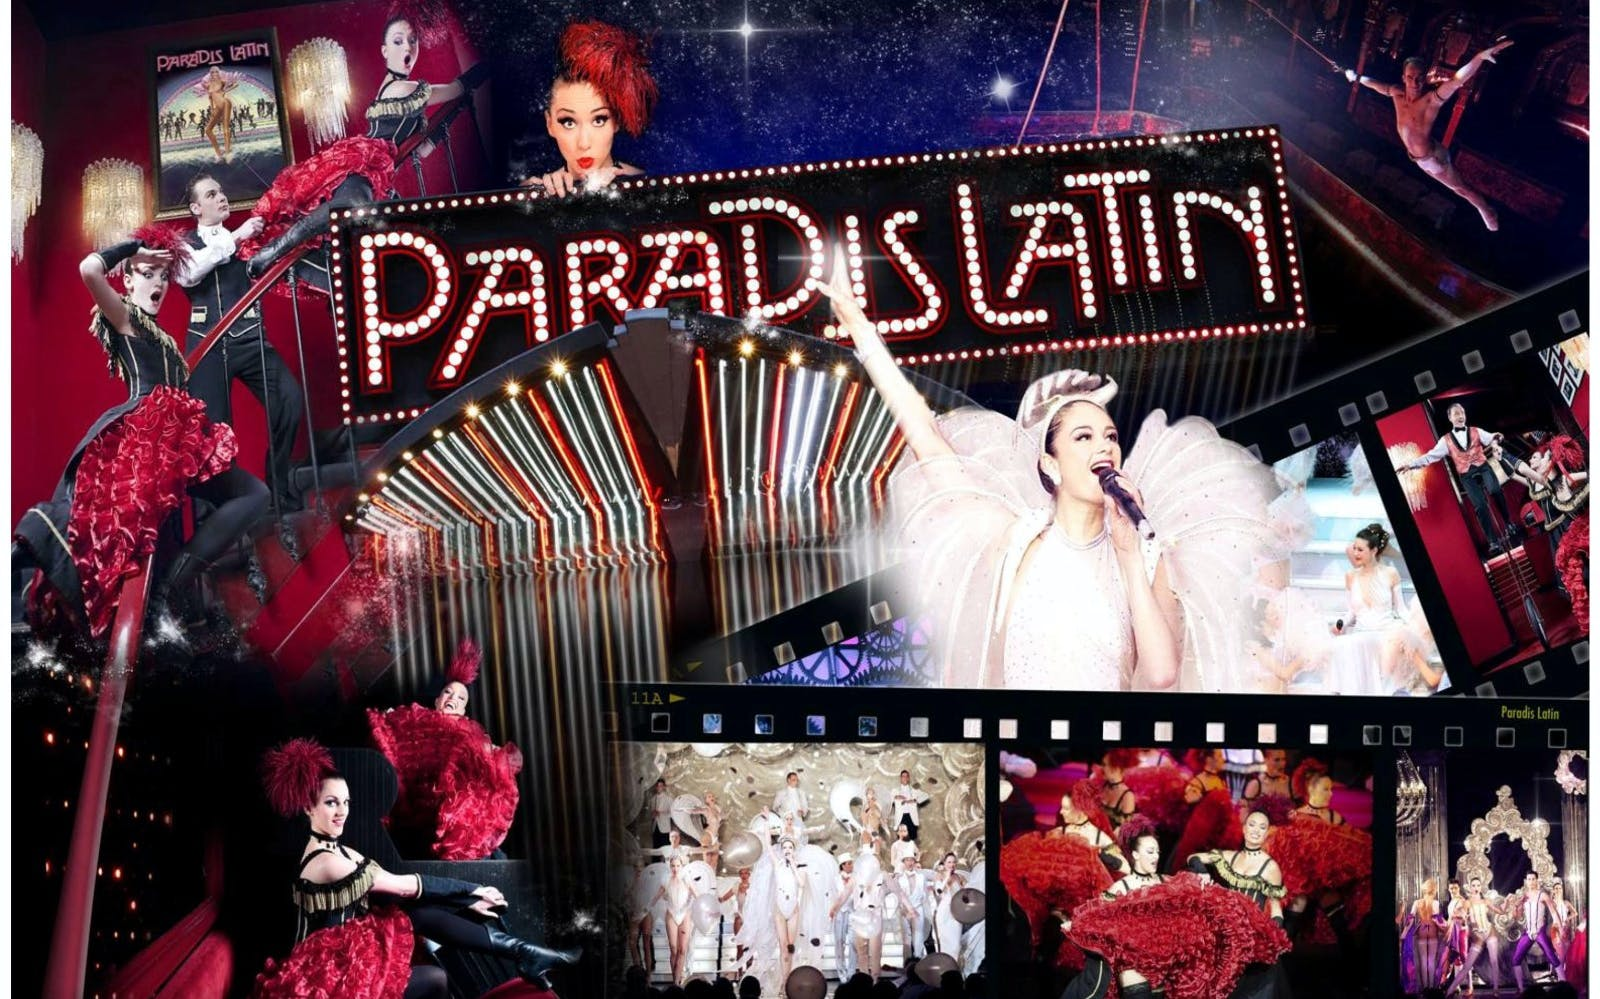 paradis latin show with champagne -3